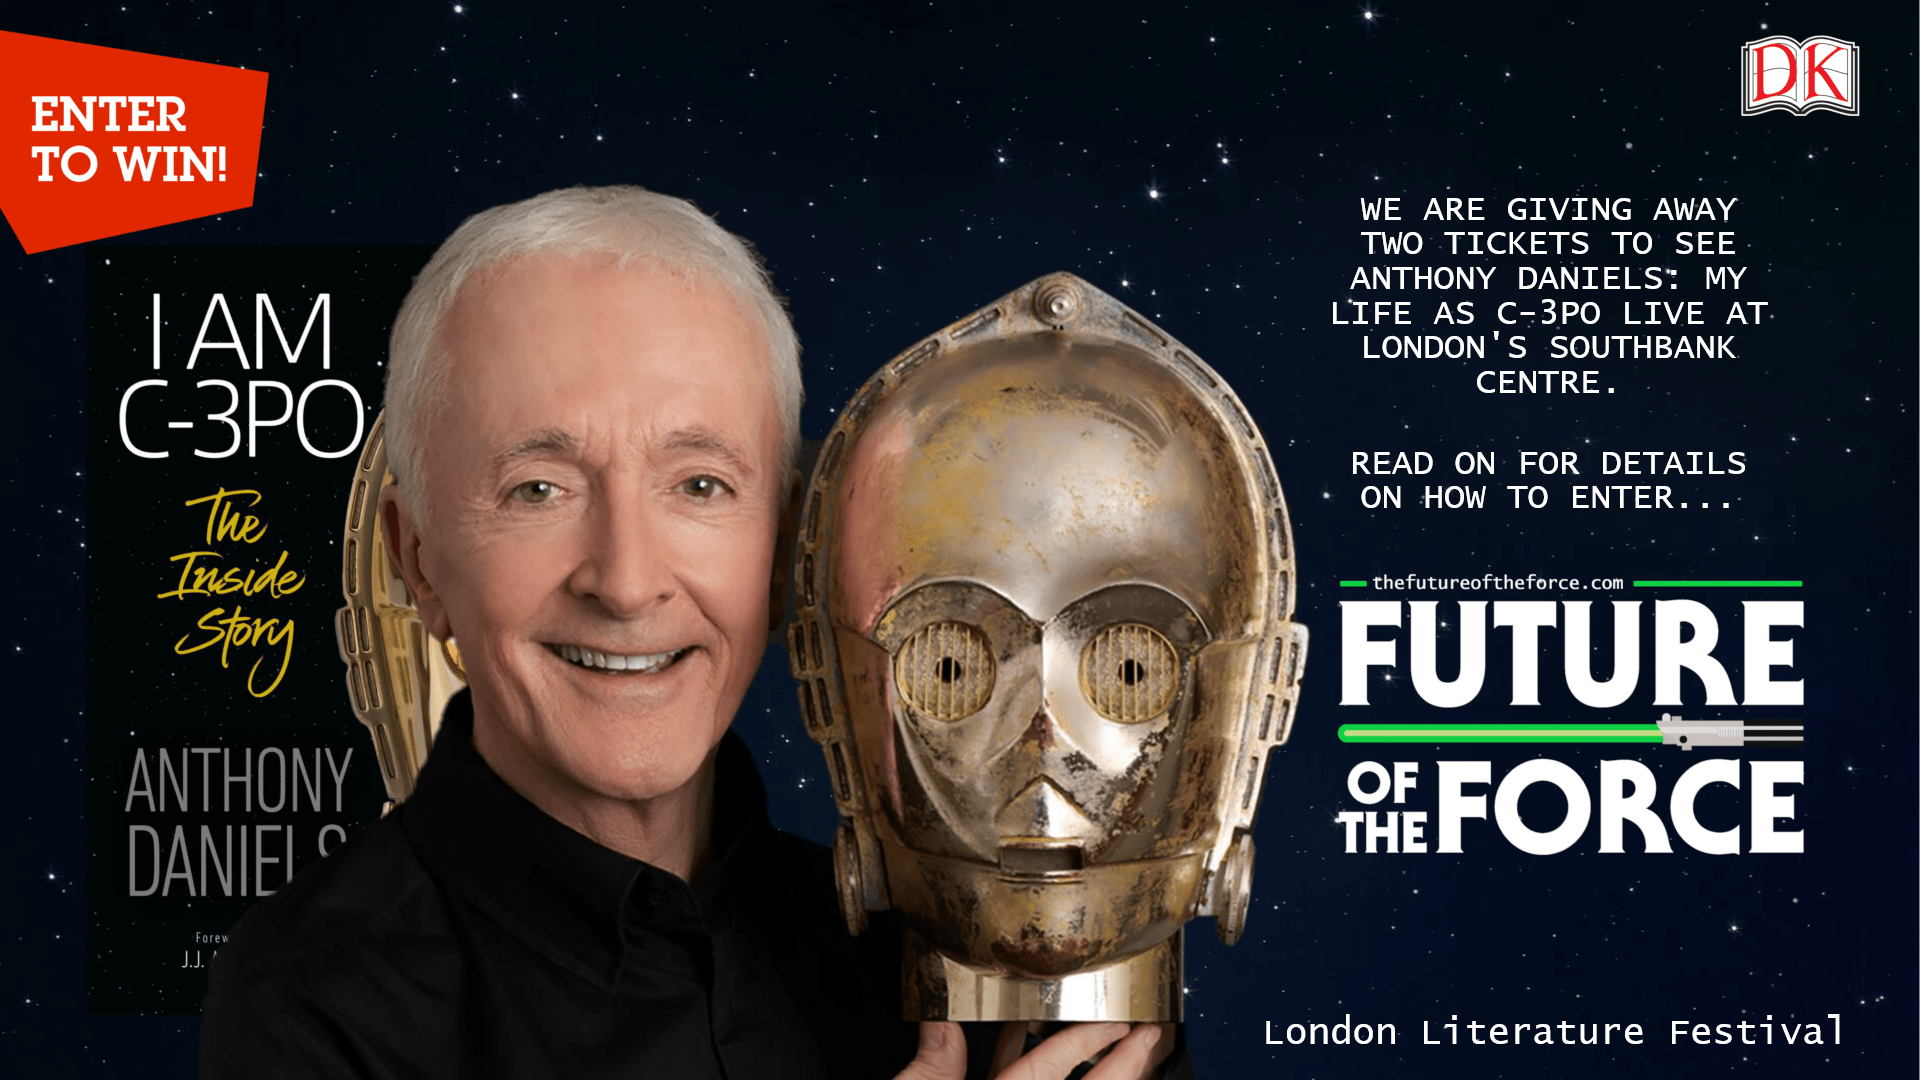 Win Tickets to See Anthony Daniels: My Life as C-3PO LIVE!